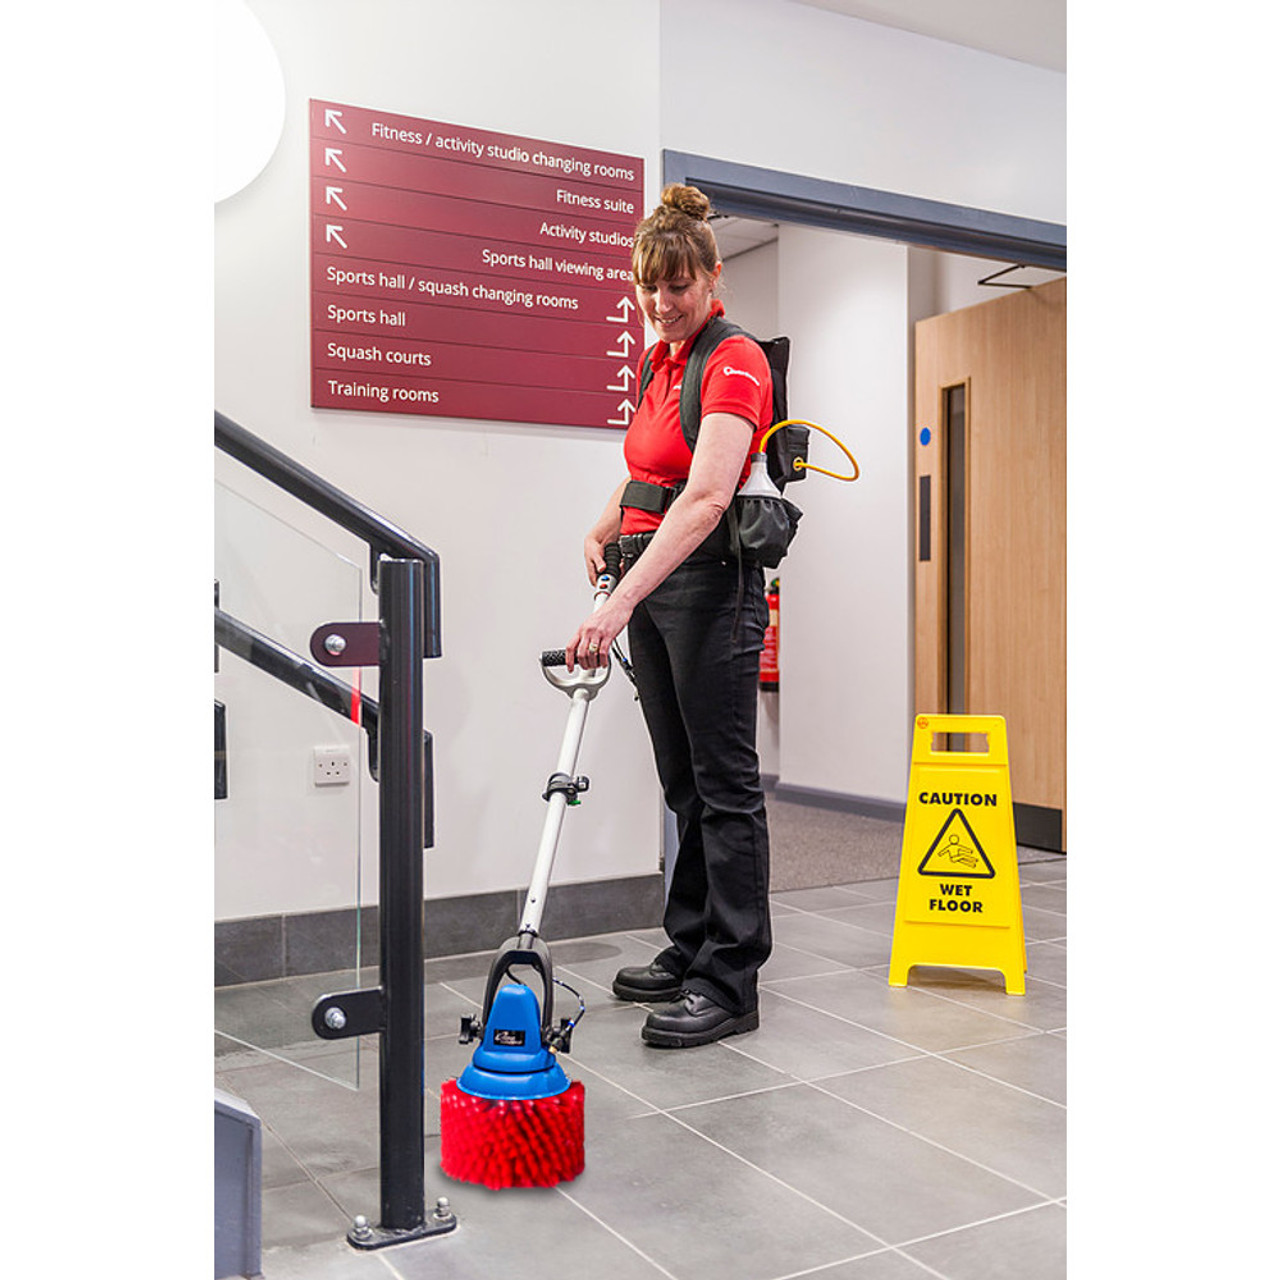 With the Jet and your solutions, the new stair brush makes quick work of cleaning floors, risers and steps.